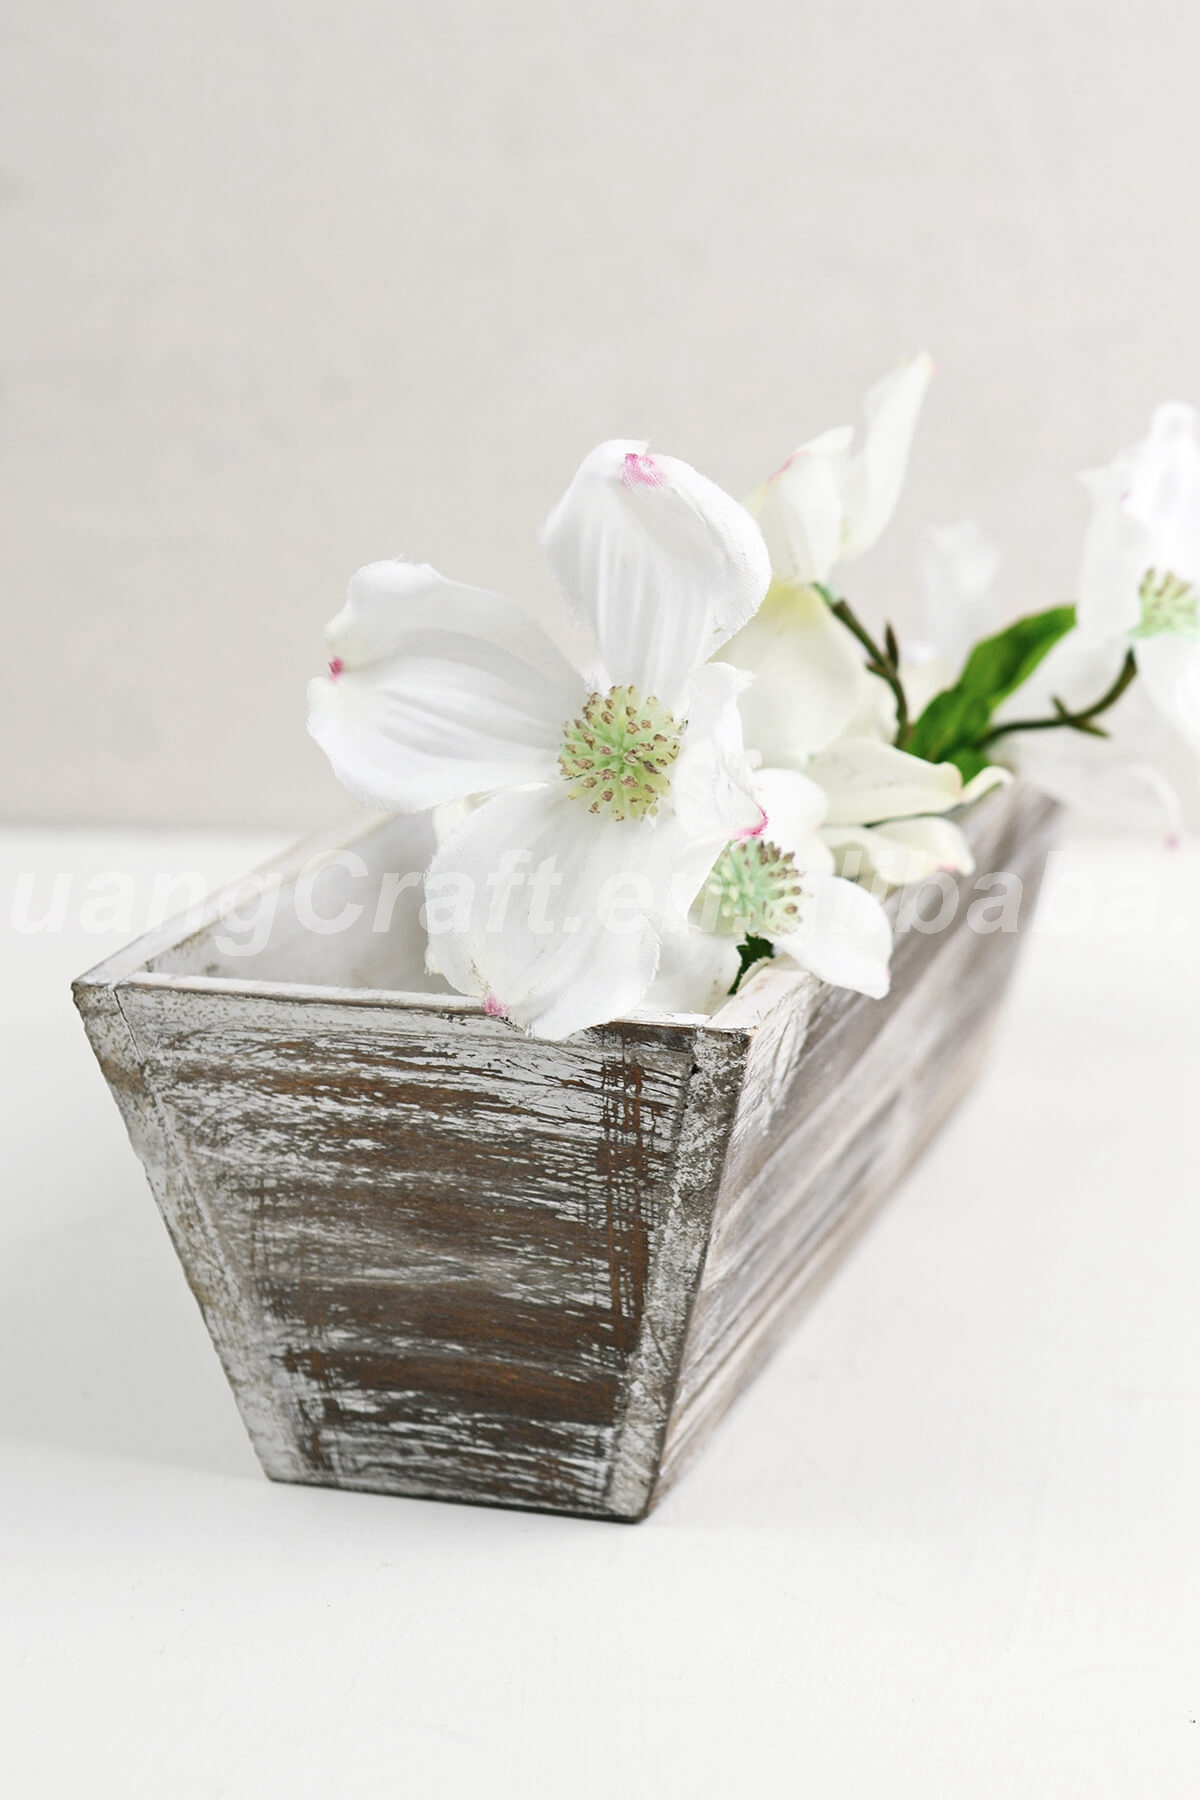 Whitewashed Tapered 4 X 12 Planter Boxes Wood,Gift Box,Home Decor ...